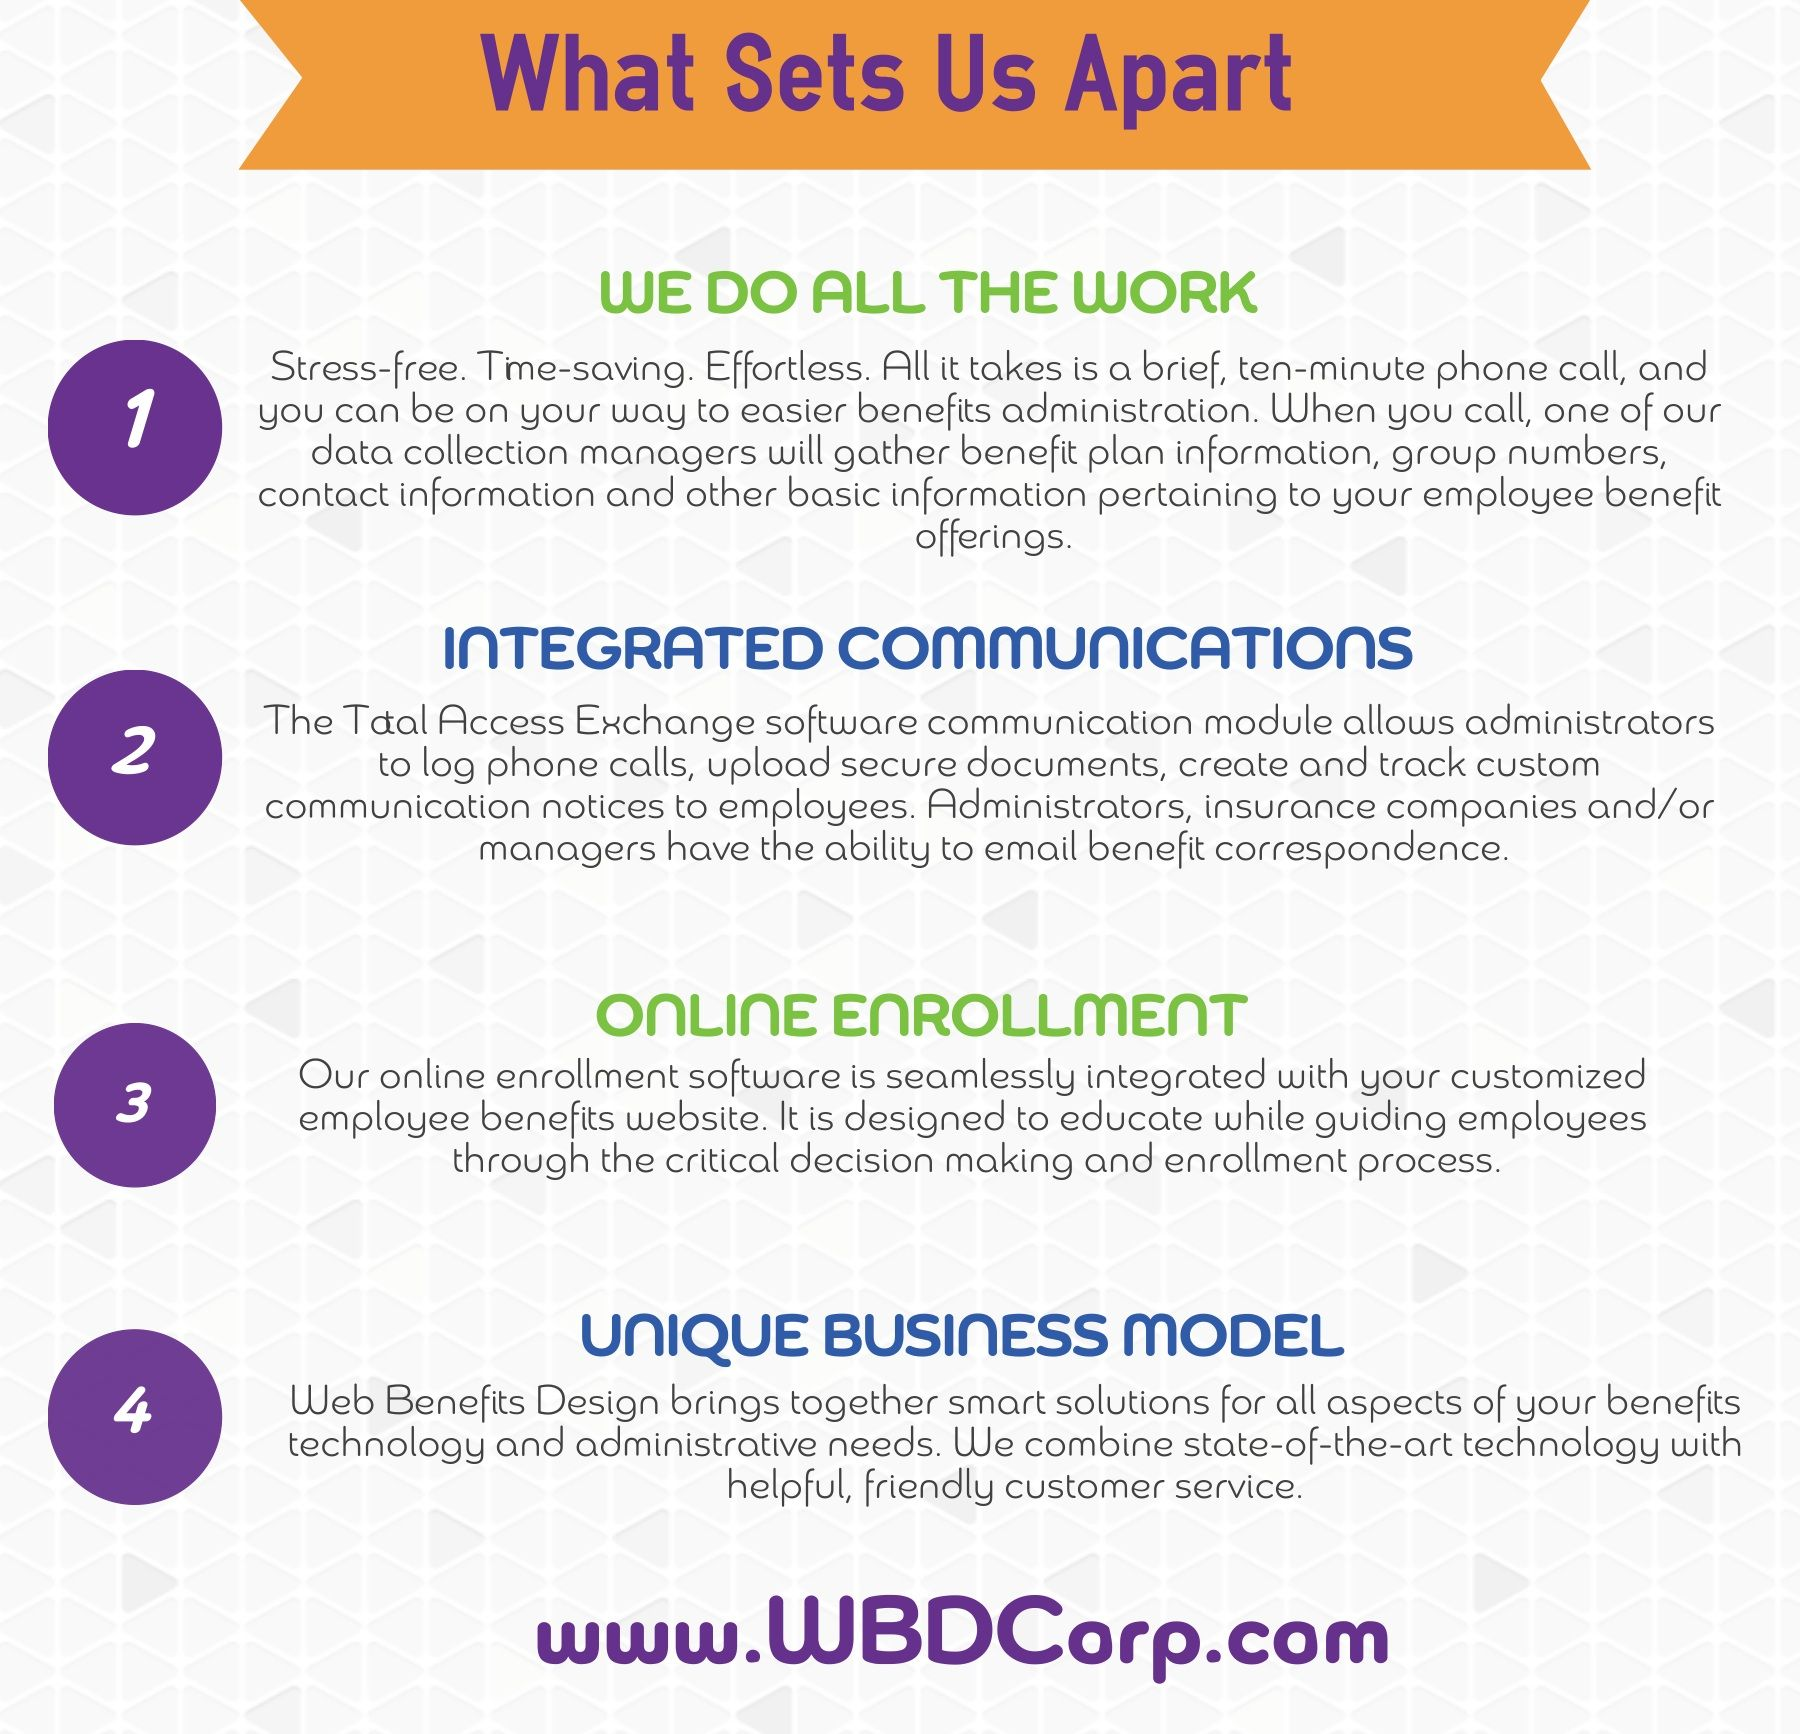 What Sets Web Benefits Design Apart From The Competition Single